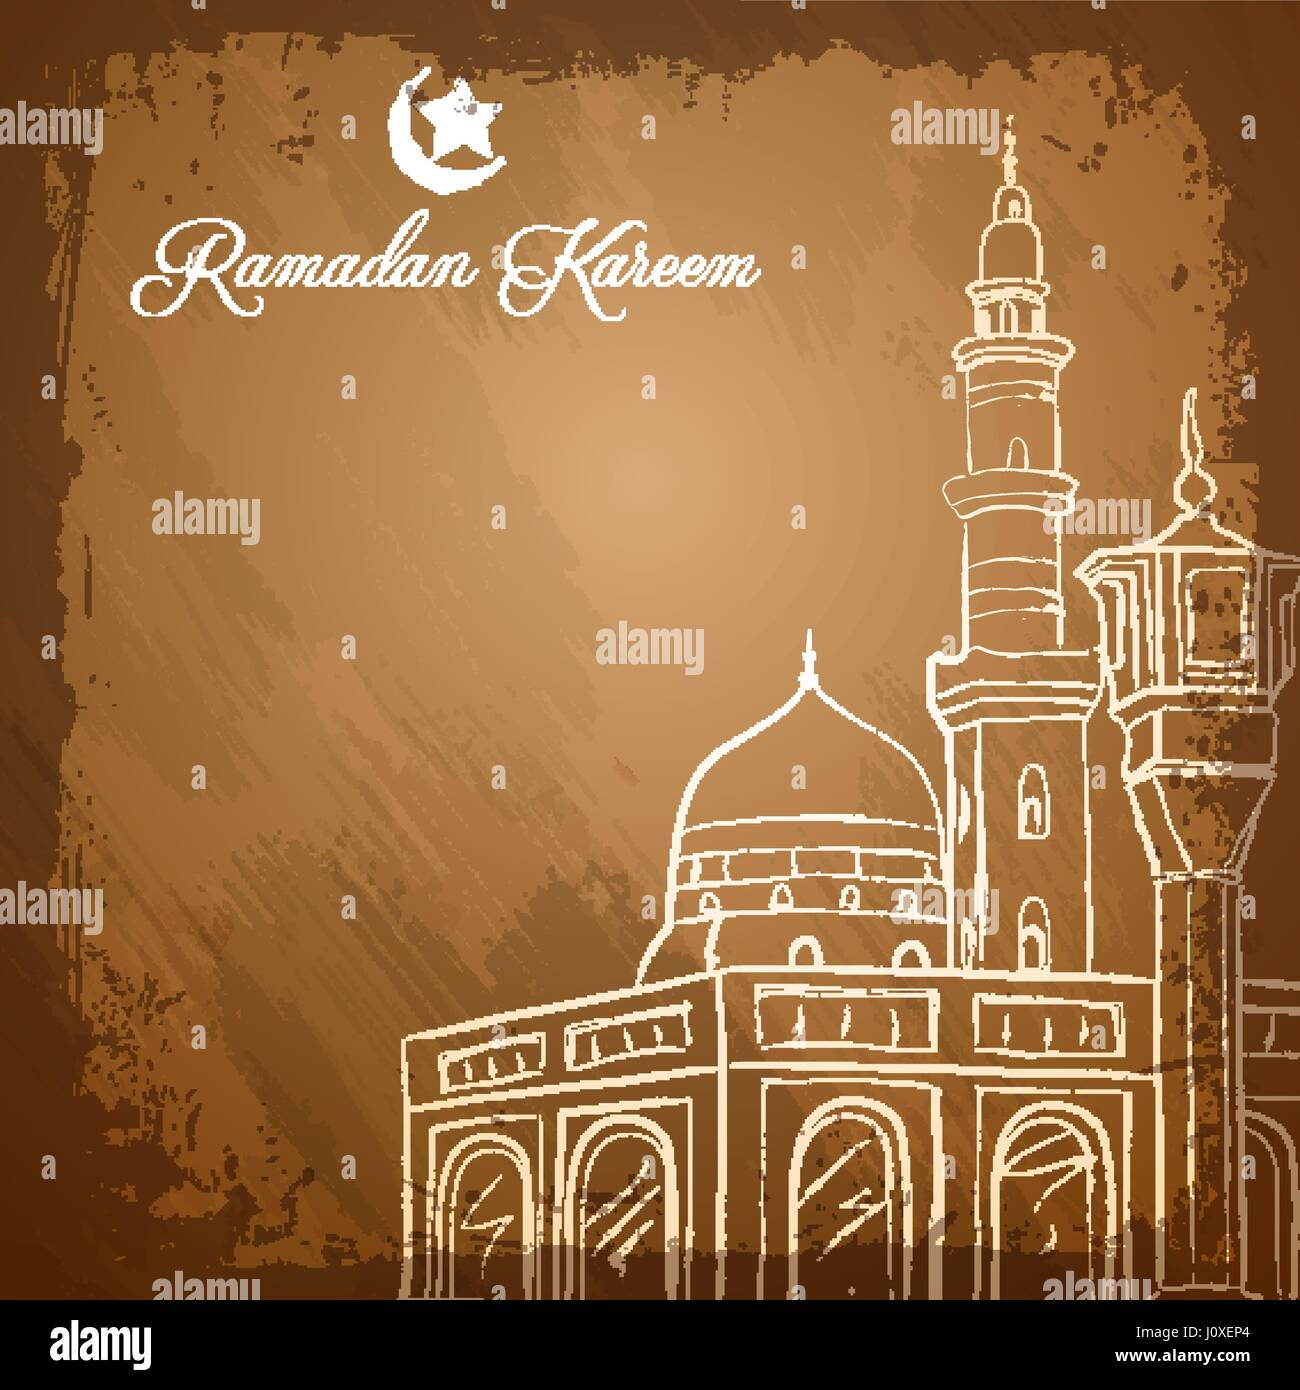 Mosque background for ramadan kareem stock photography image - Islamic Background Ink Sketch Mosque For Ramadan Kareem